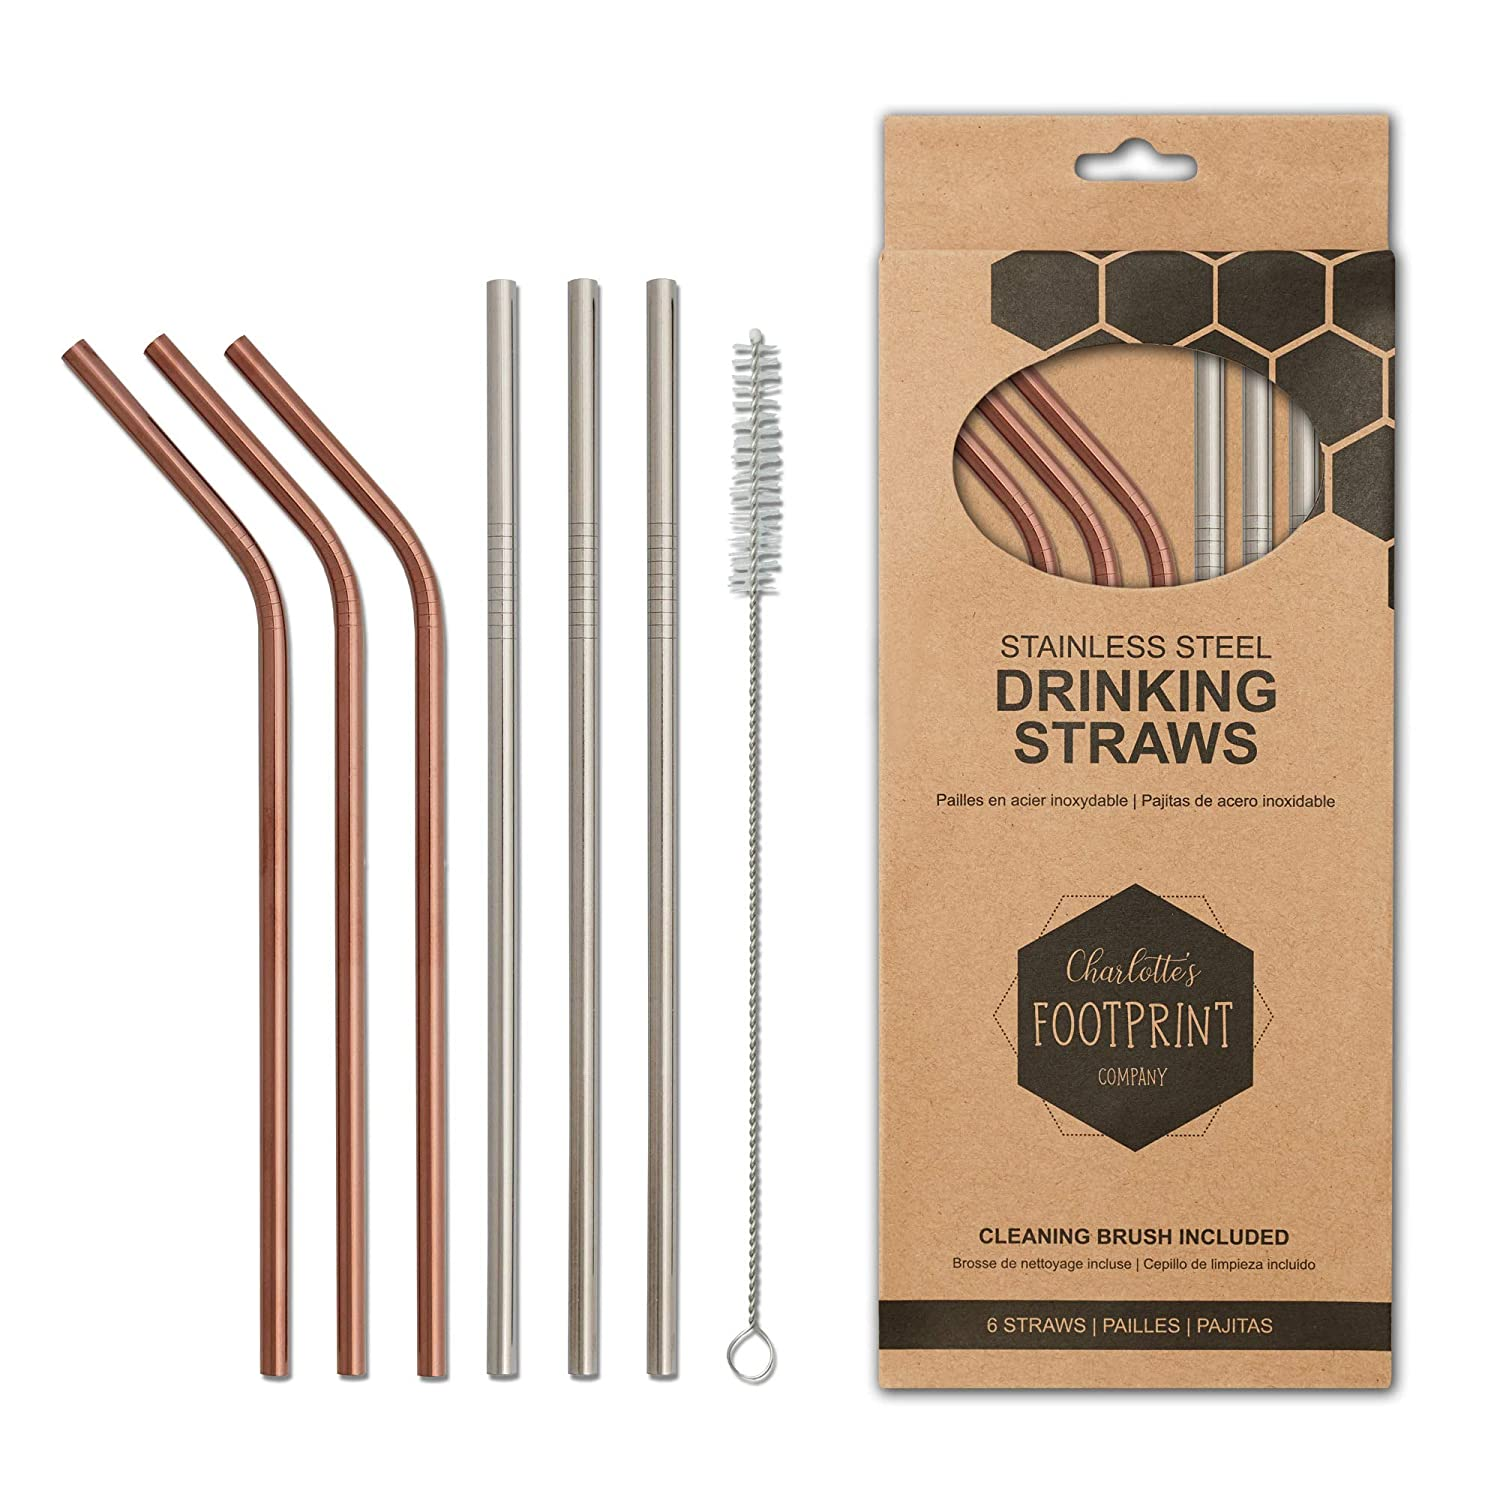 Reusable straws are better for the environment.